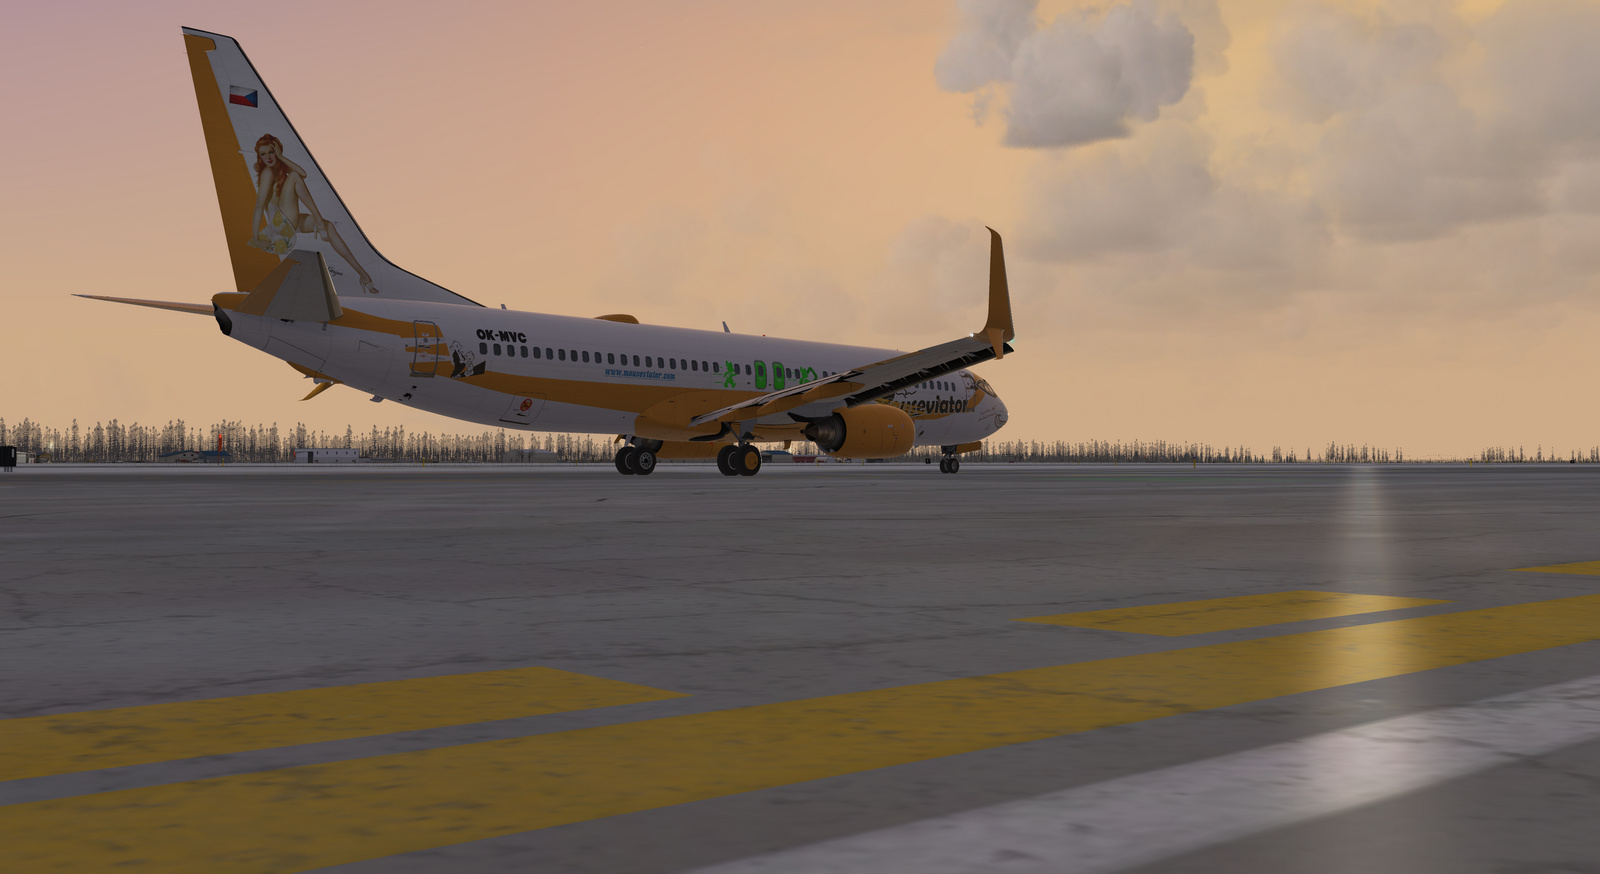 Mouseviator repaint for PMDG 737-800 NGXu, screenshot 20/20